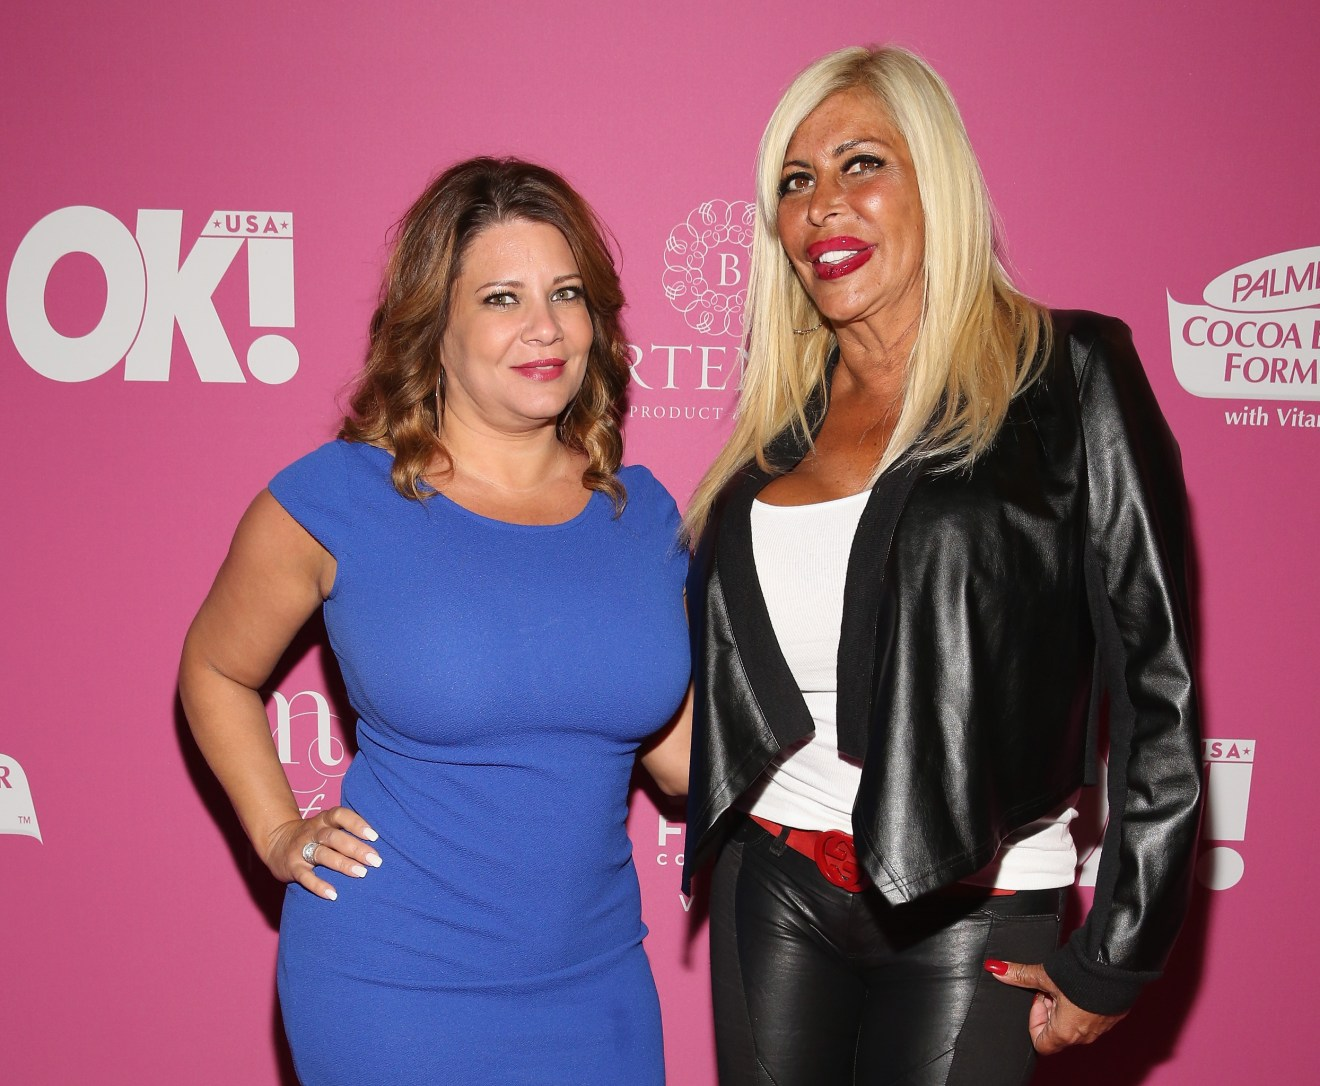 NEW YORK, NY - MAY 13: TV Personalities Karen Gravano and Angela 'Big Ang' Raiola attend OK! Magazine's So Sexy NYC Event at HAUS Nightclub on May 13, 2015 in New York City. (Photo by Robin Marchant/Getty Images)